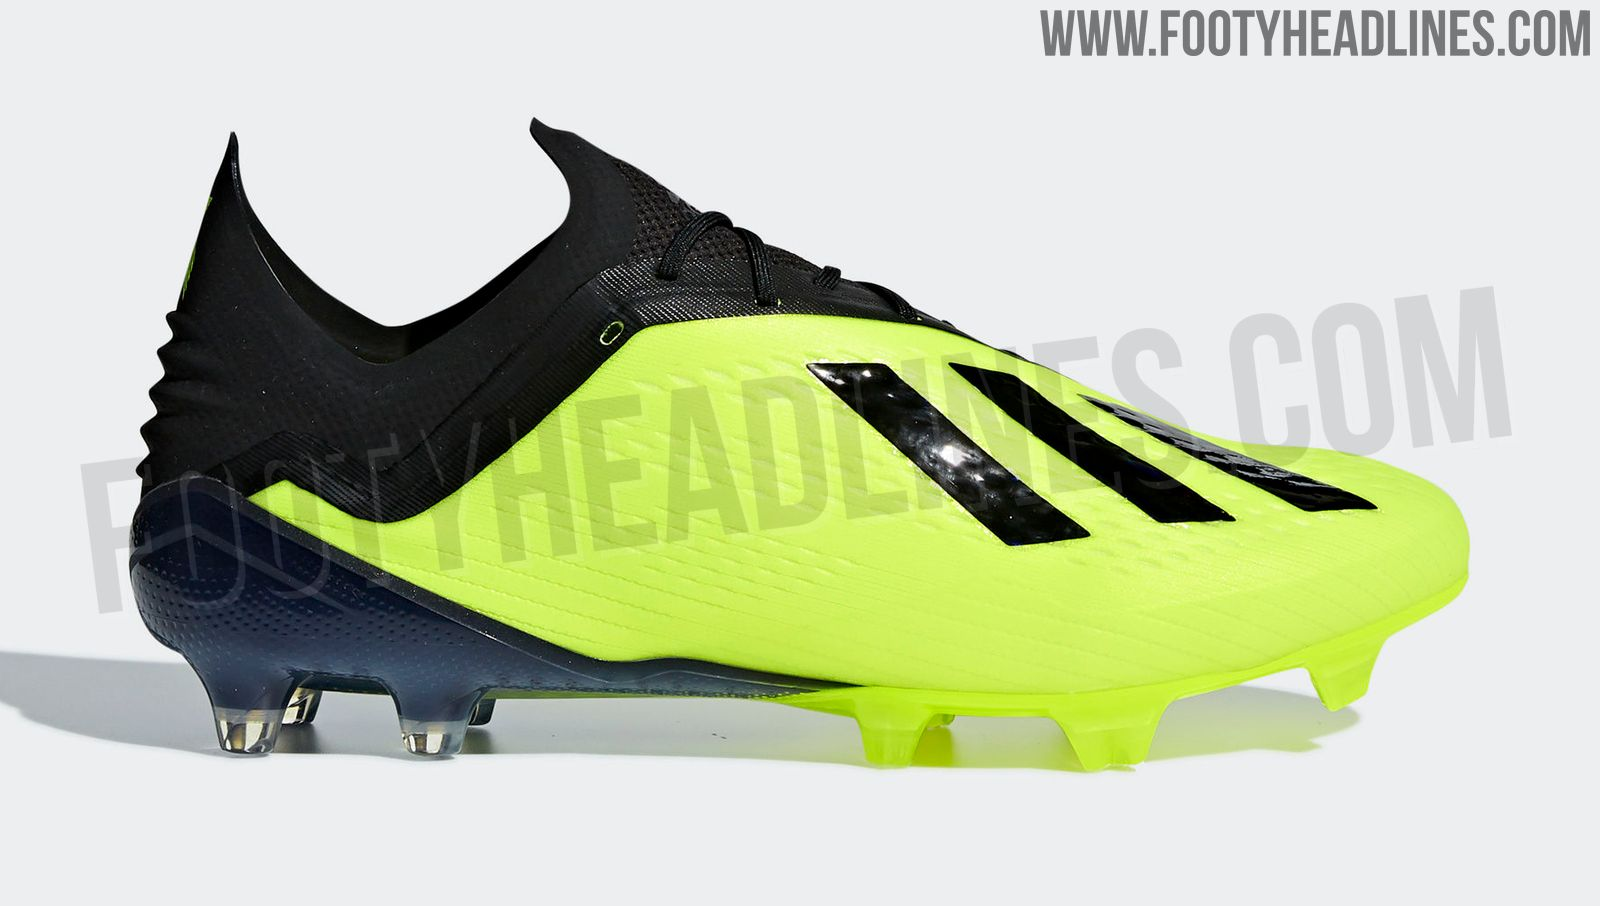 ff7c813f8 Adidas X 18.1  Team Mode  2018-2019 Boots Leaked - Leaked Soccer Cleats